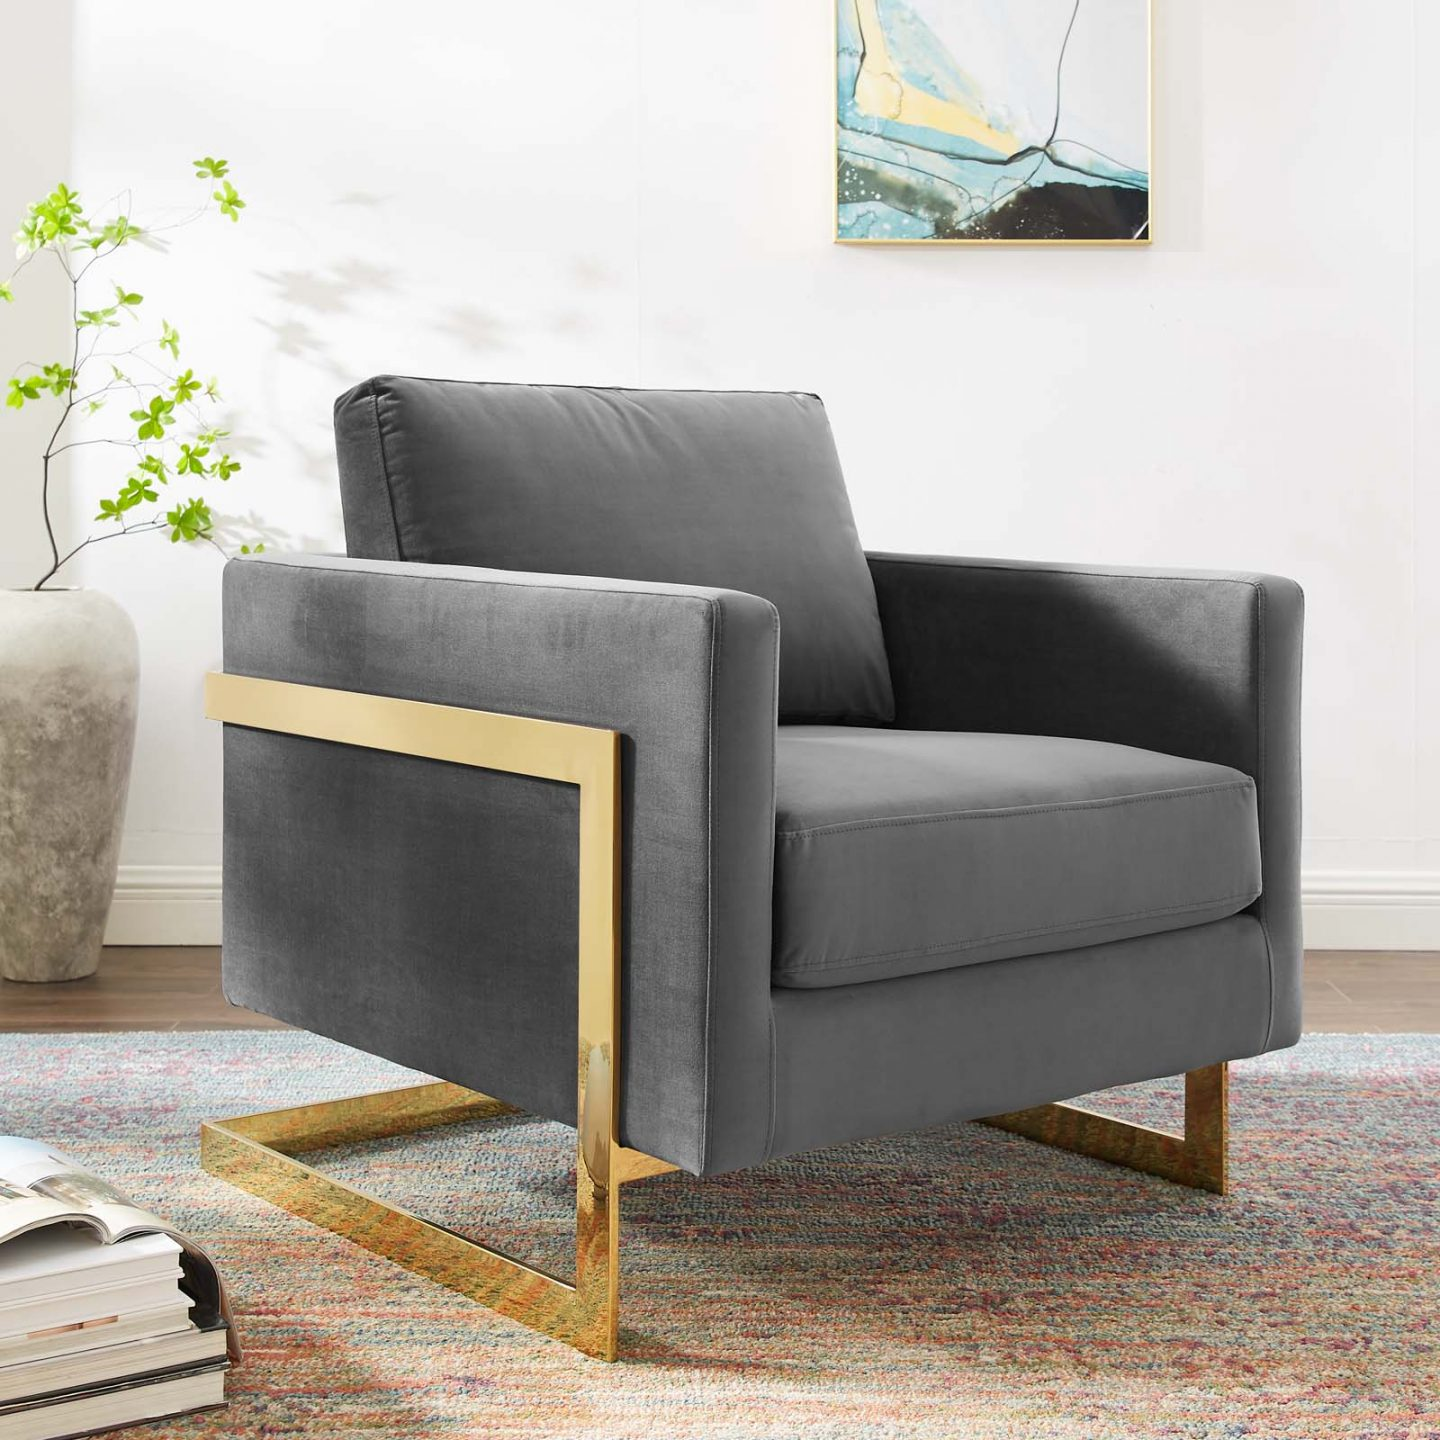 Dark gay chair with gold detailing from LexMod